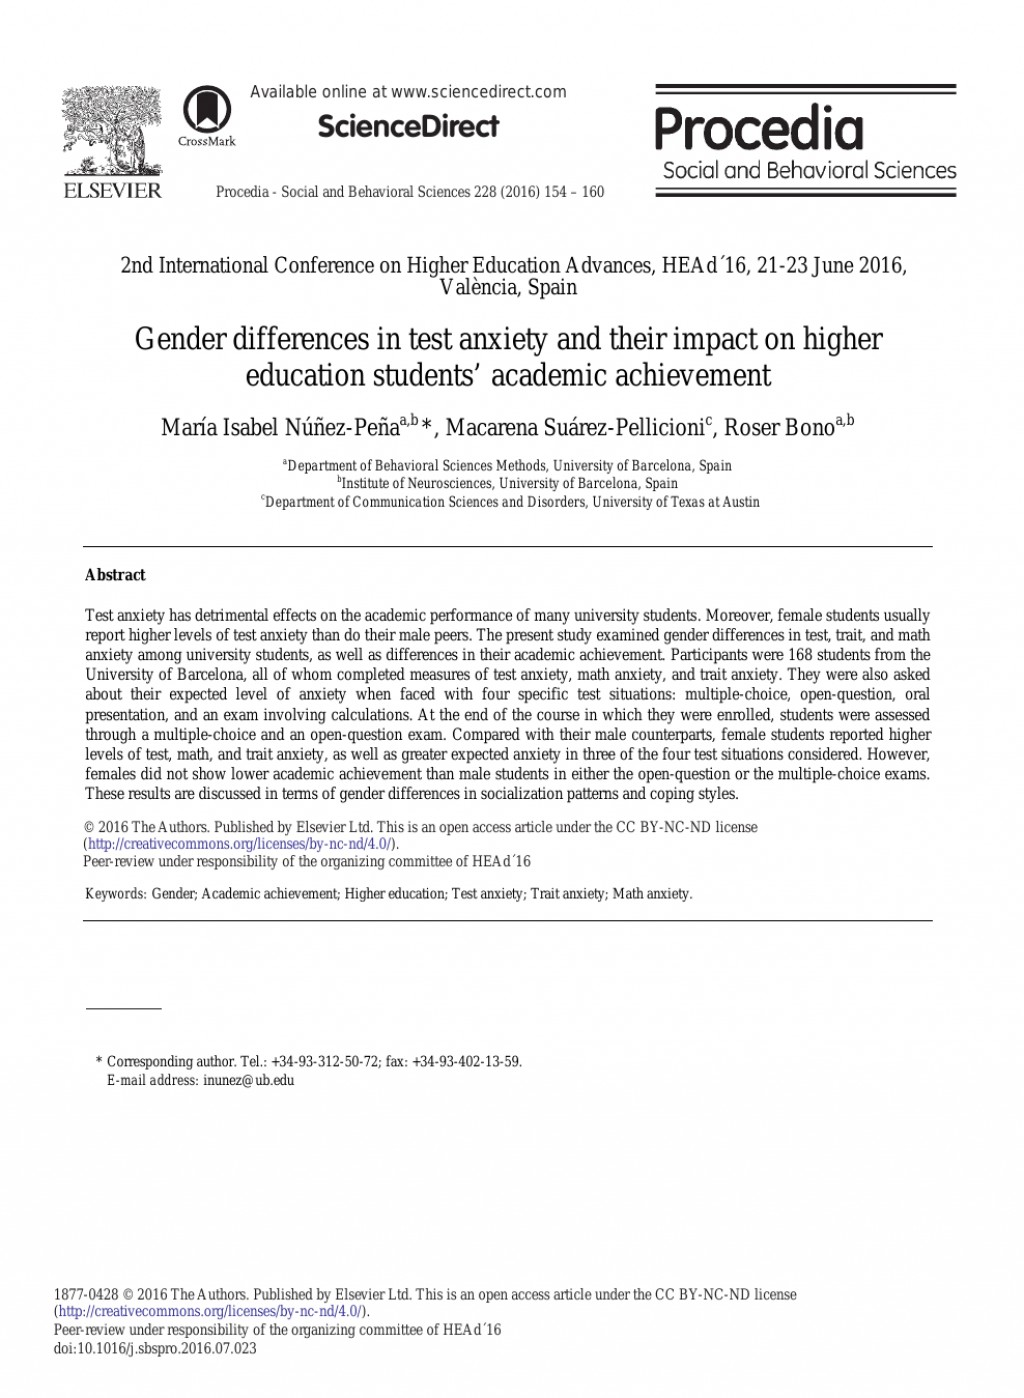 004 Anxiety Research Paper Abstract Amazing Large